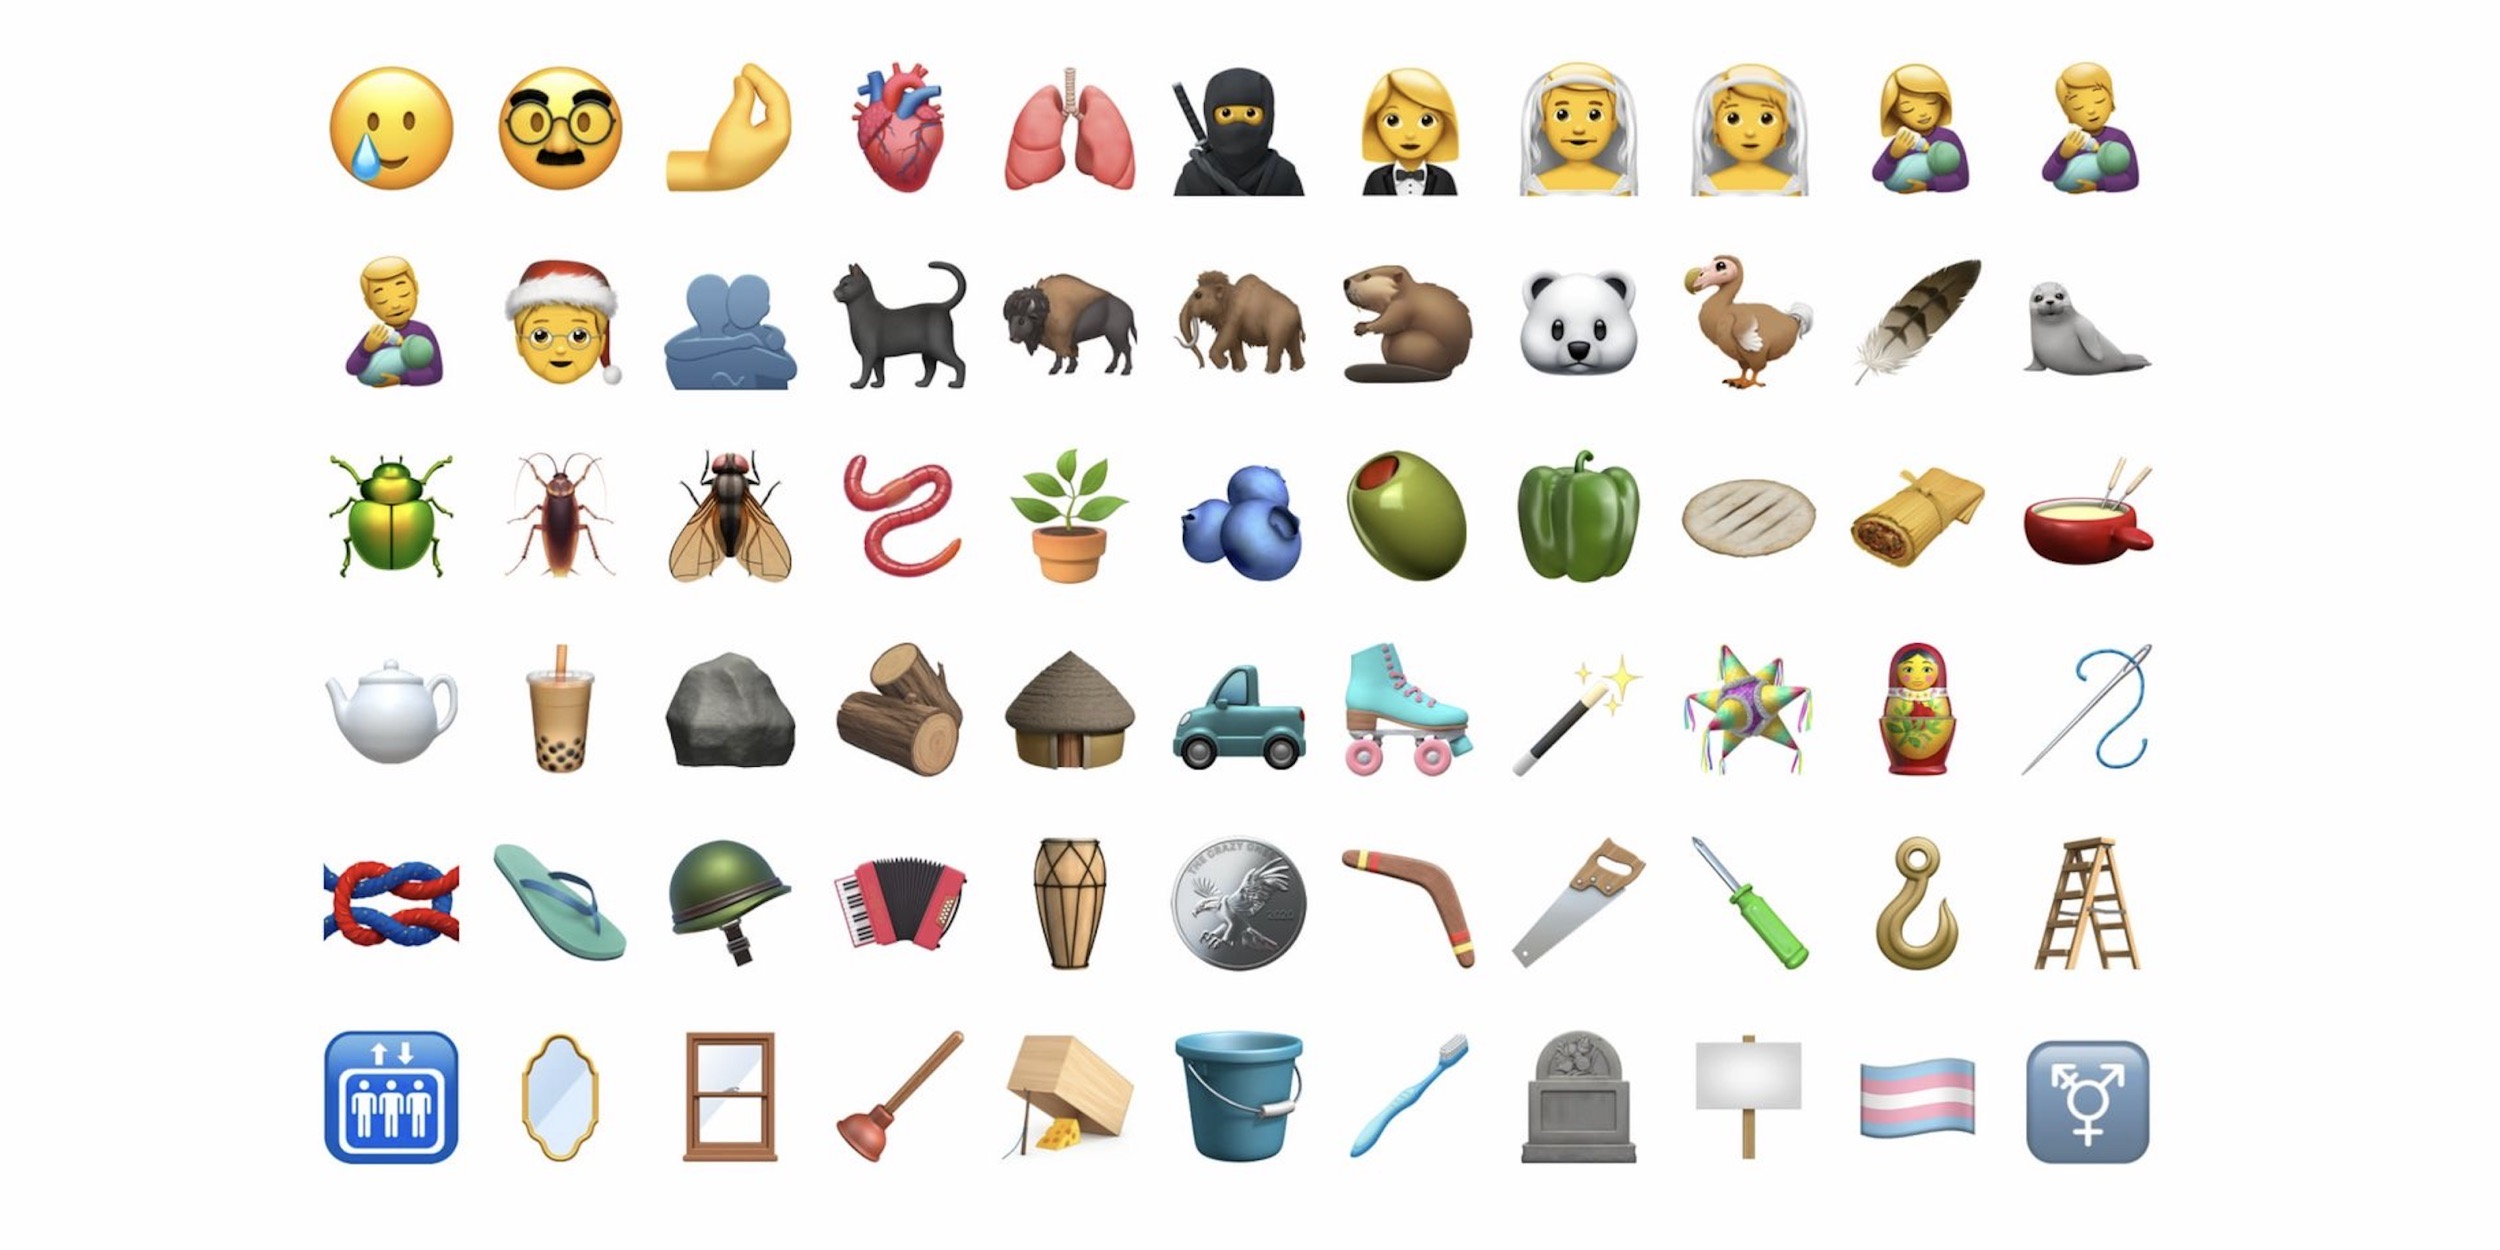 How to update to iOS 14.2 to get over 100 new emoji on iPhone